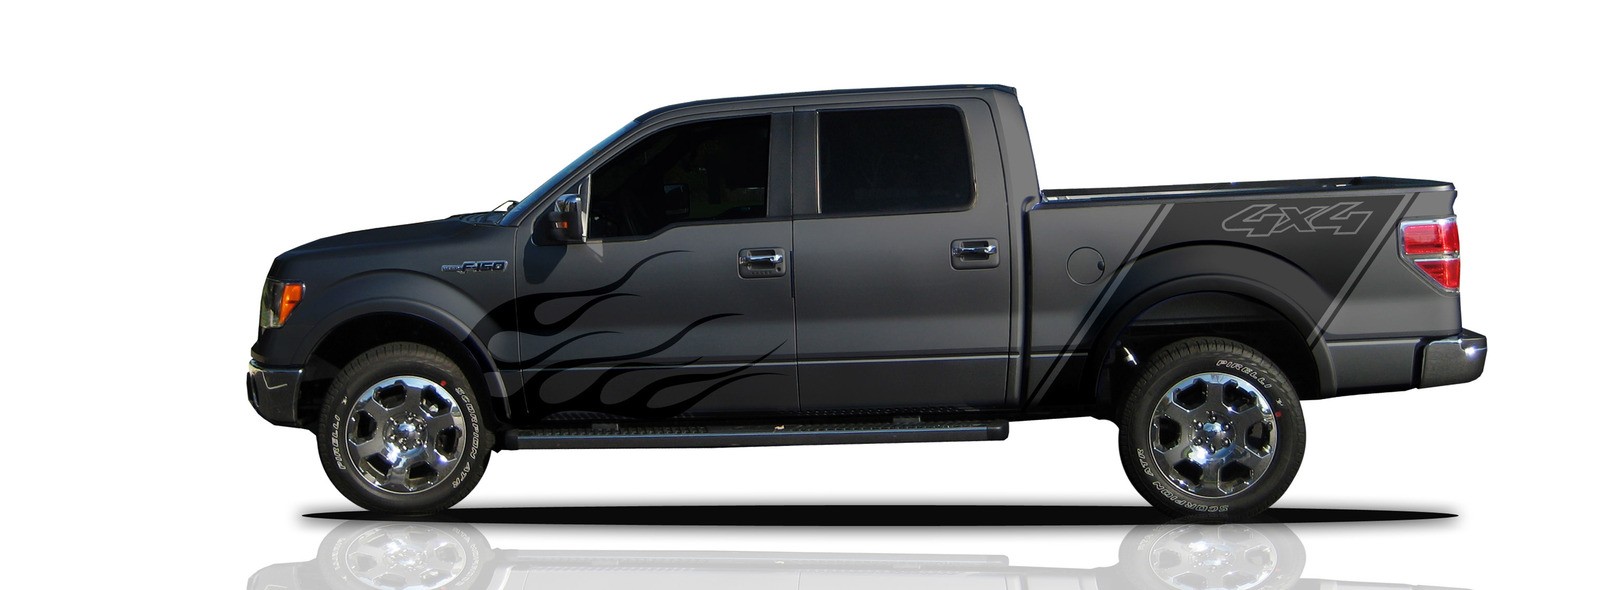 Ford F To Get Official Custom Vinyl Treatment - Custom vinyl decals austin tx